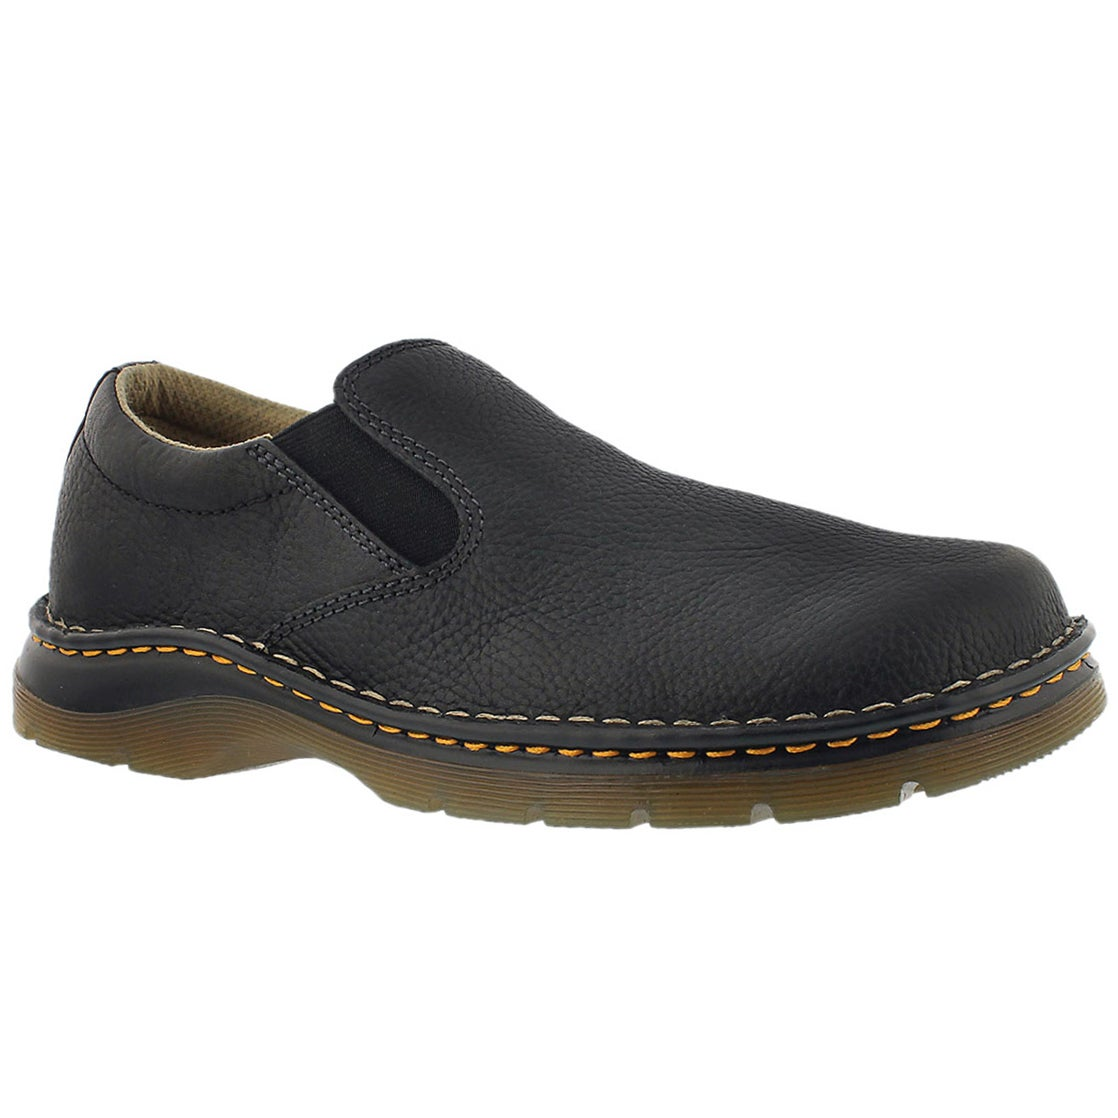 Mns Bryce black slip on casual shoe